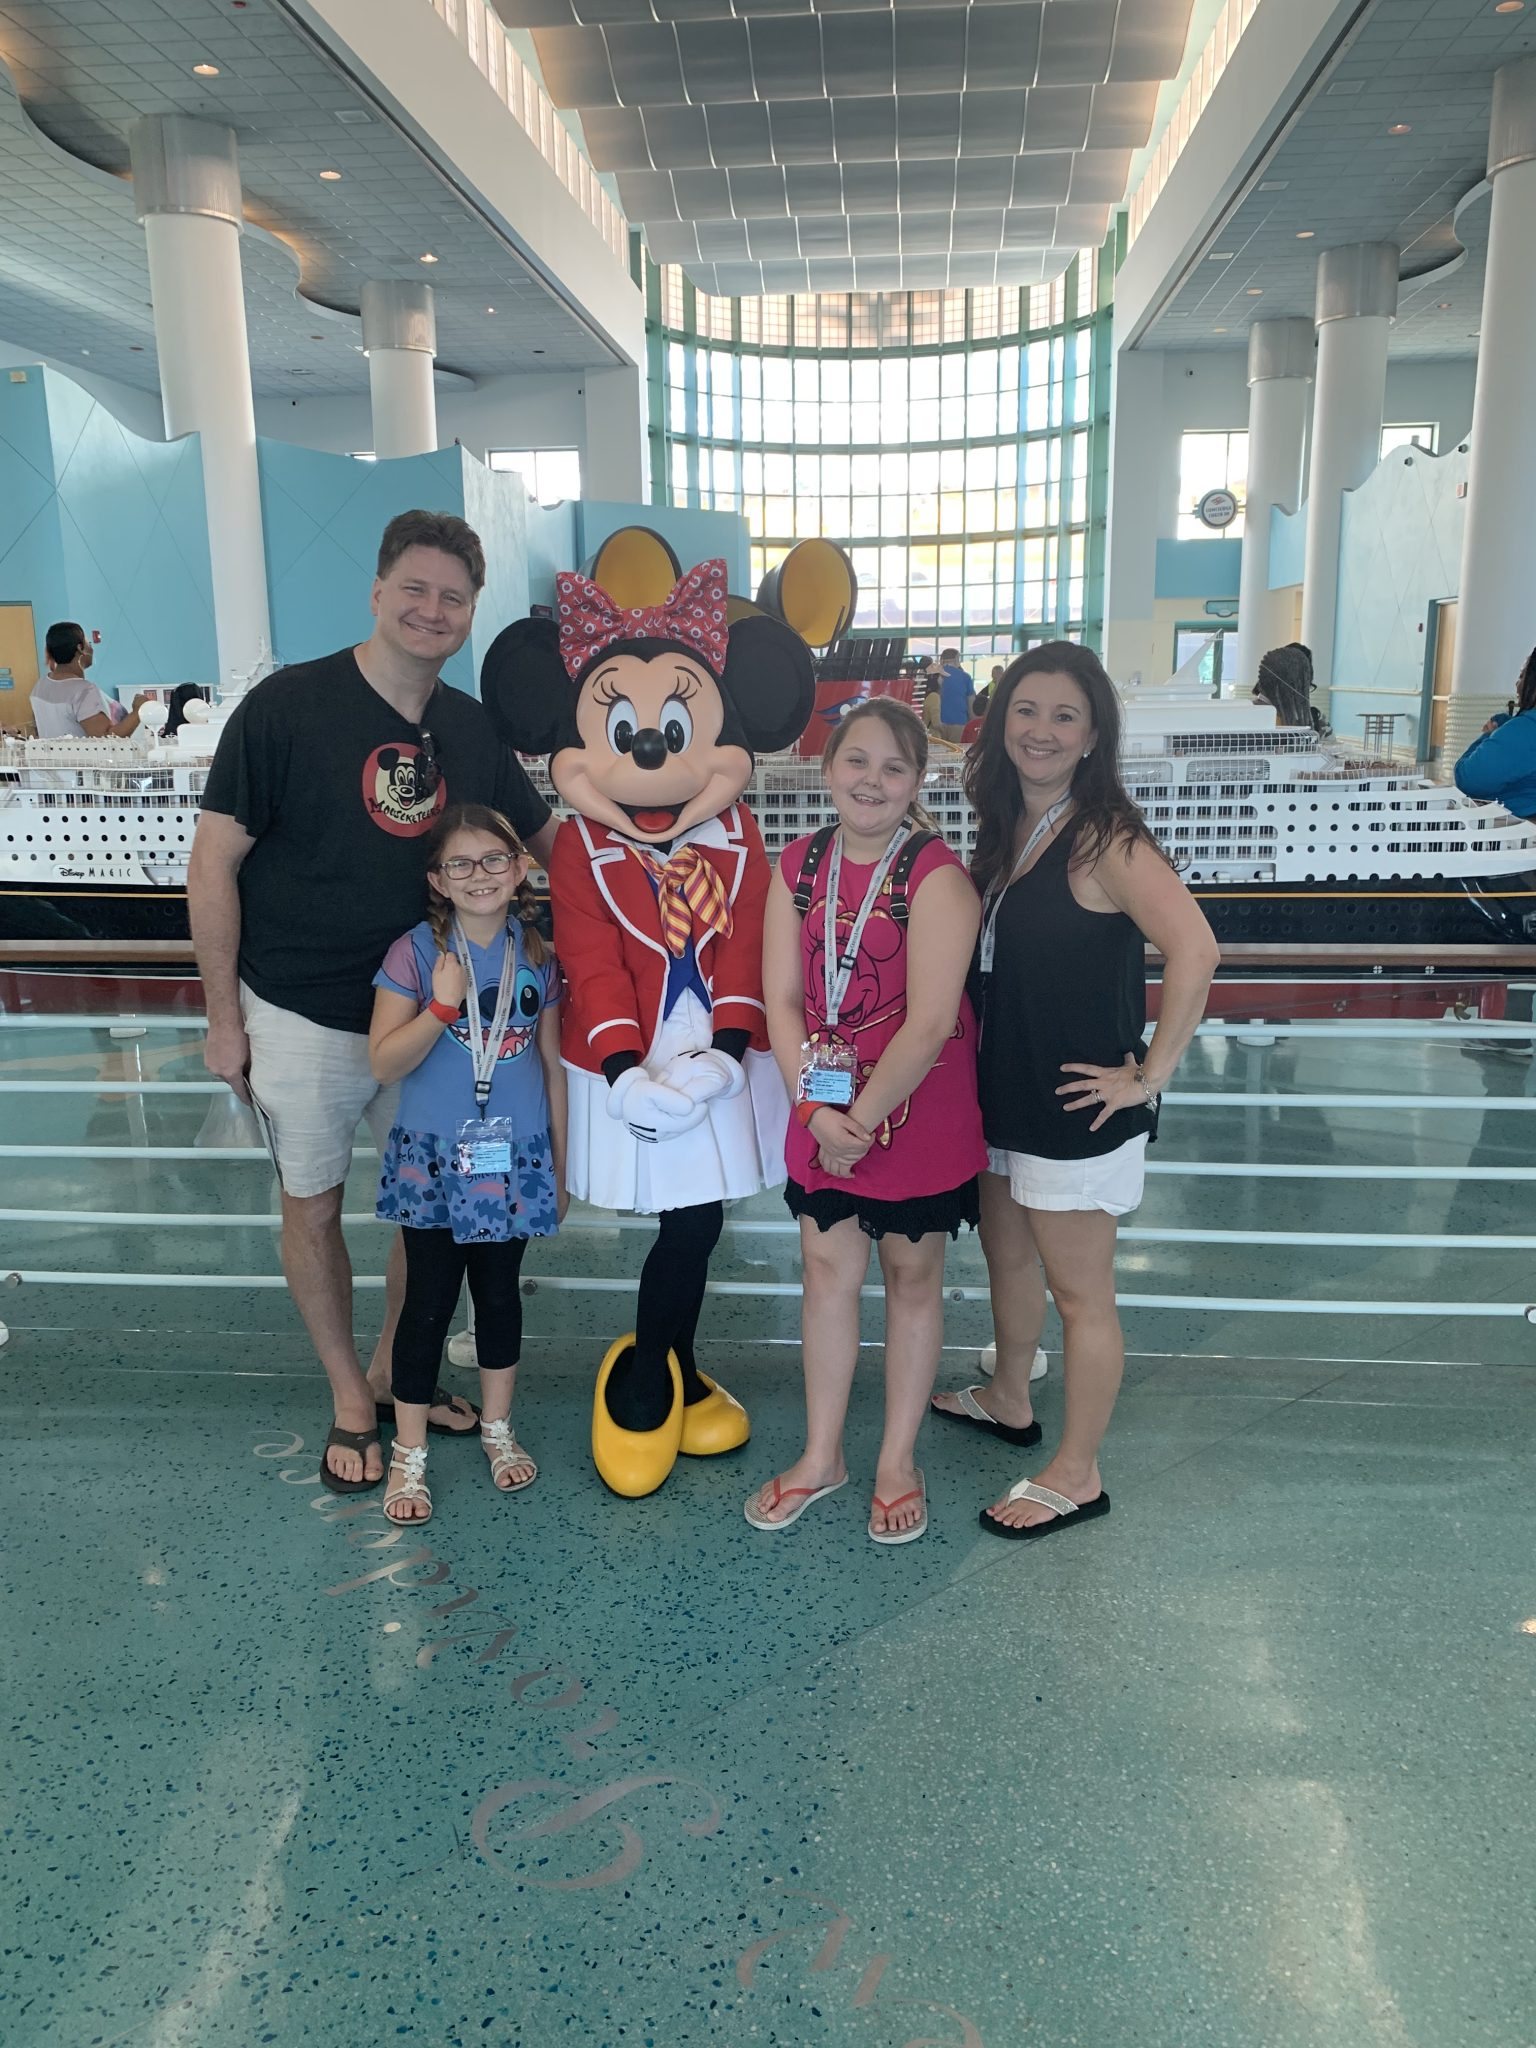 Minnie Mouse at Disney Cruise Port check in